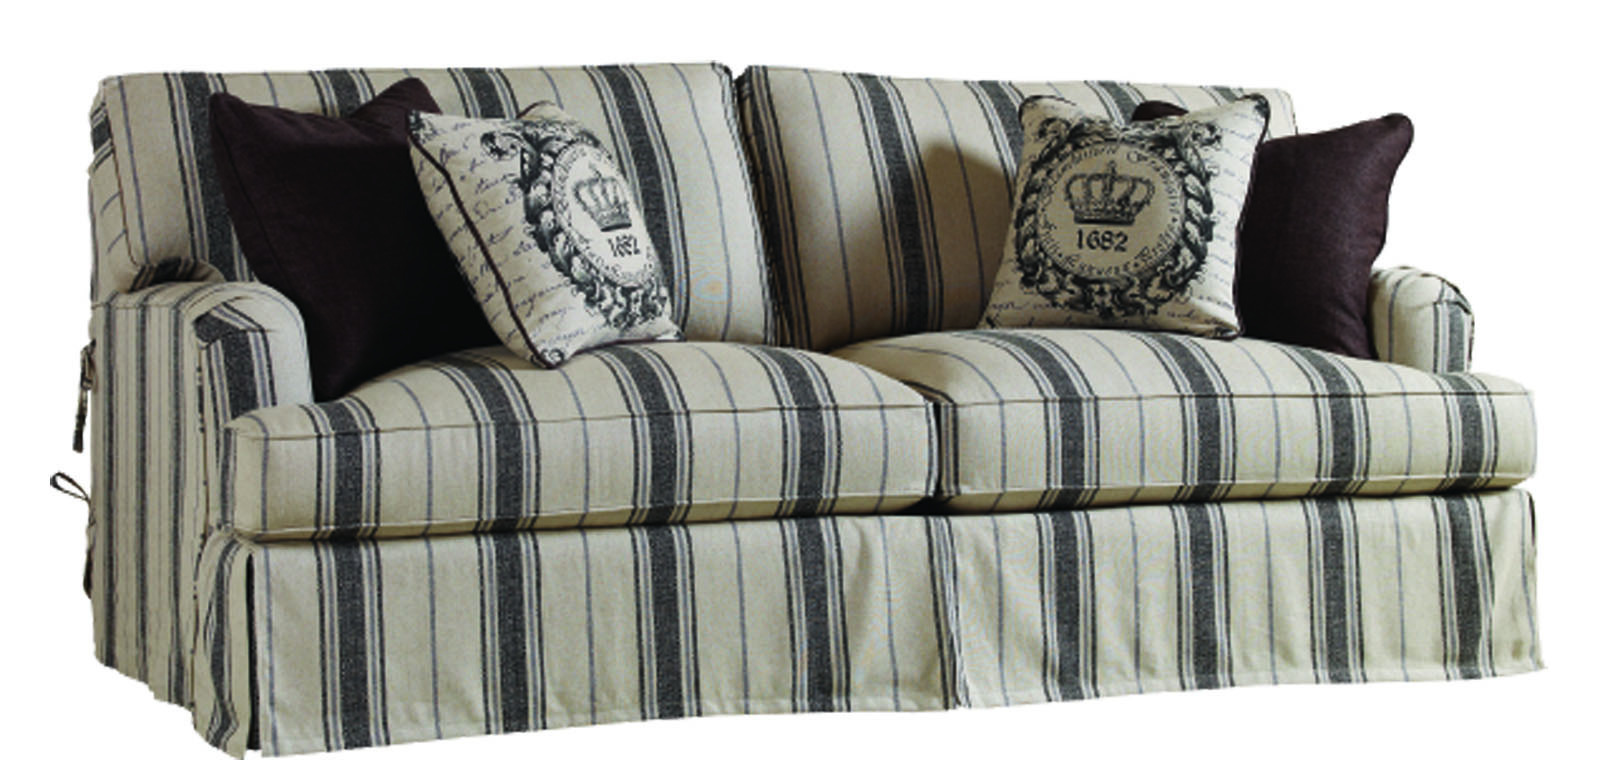 Alf Img Showing Striped Fabric Sofas